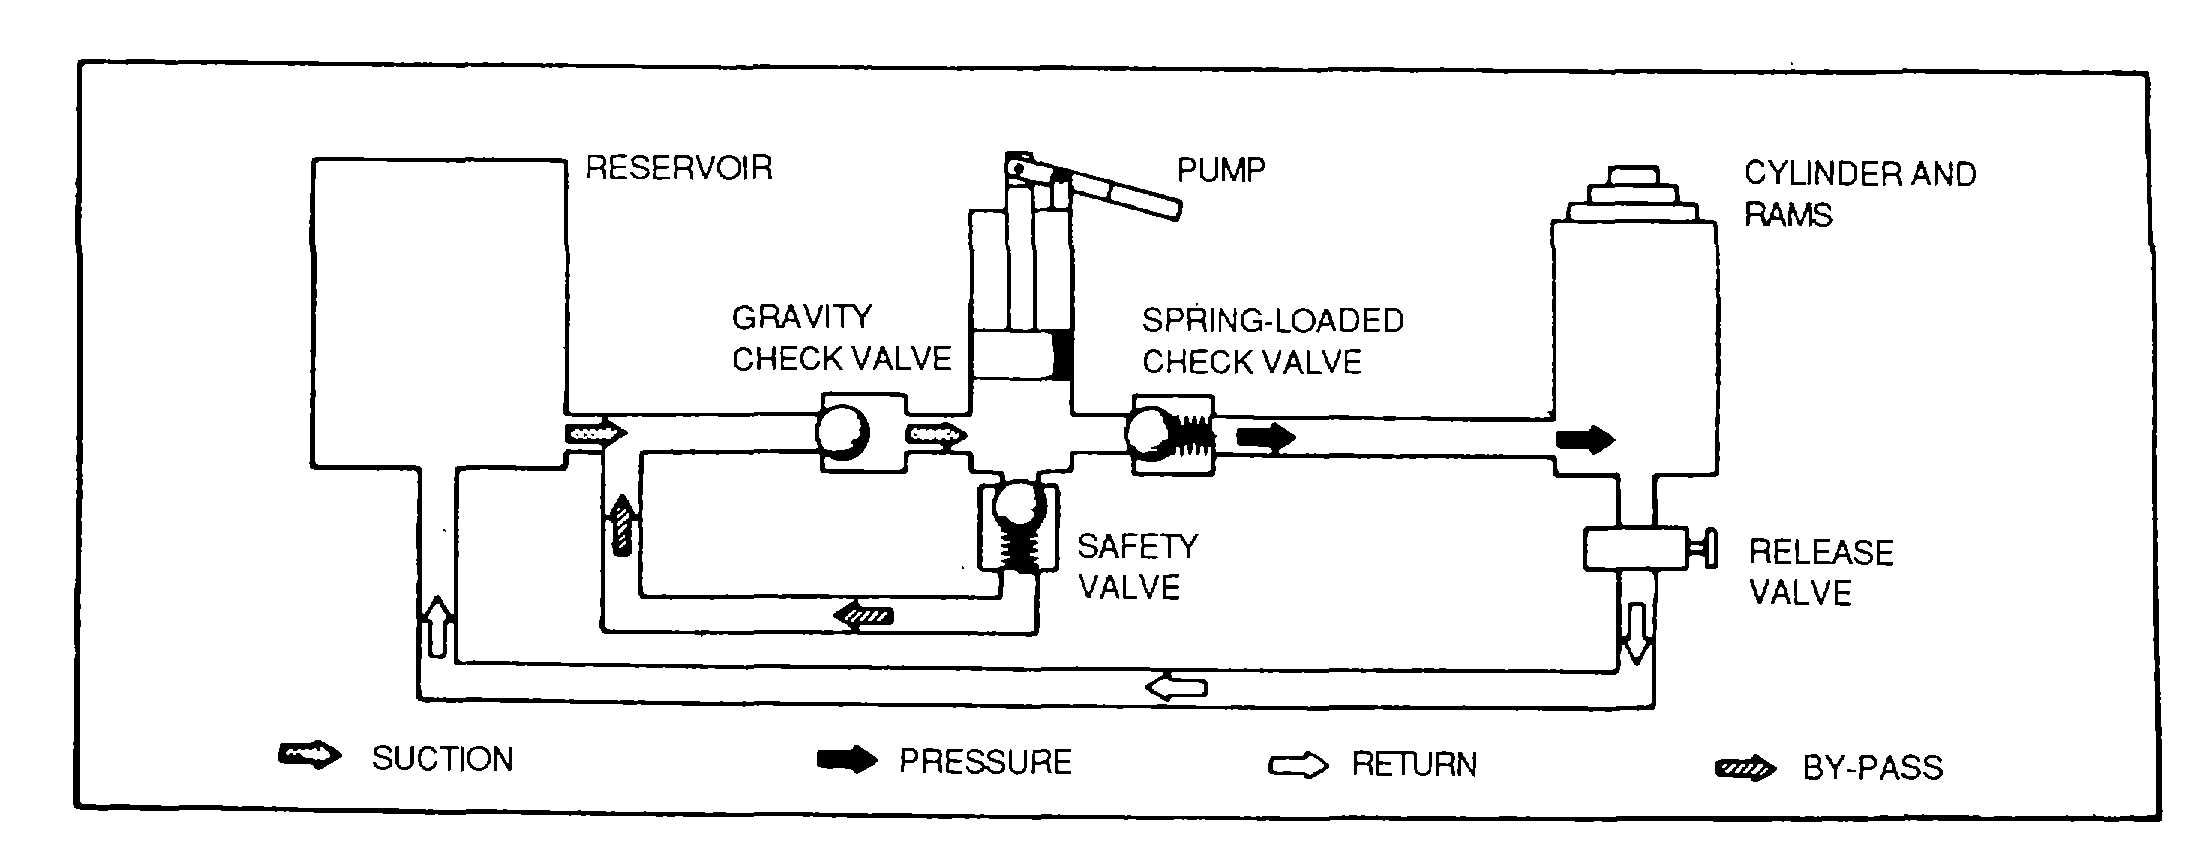 bottle jack repair rh workshopaddict com hydraulic bottle jack repair diagram Pump Jack Diagram